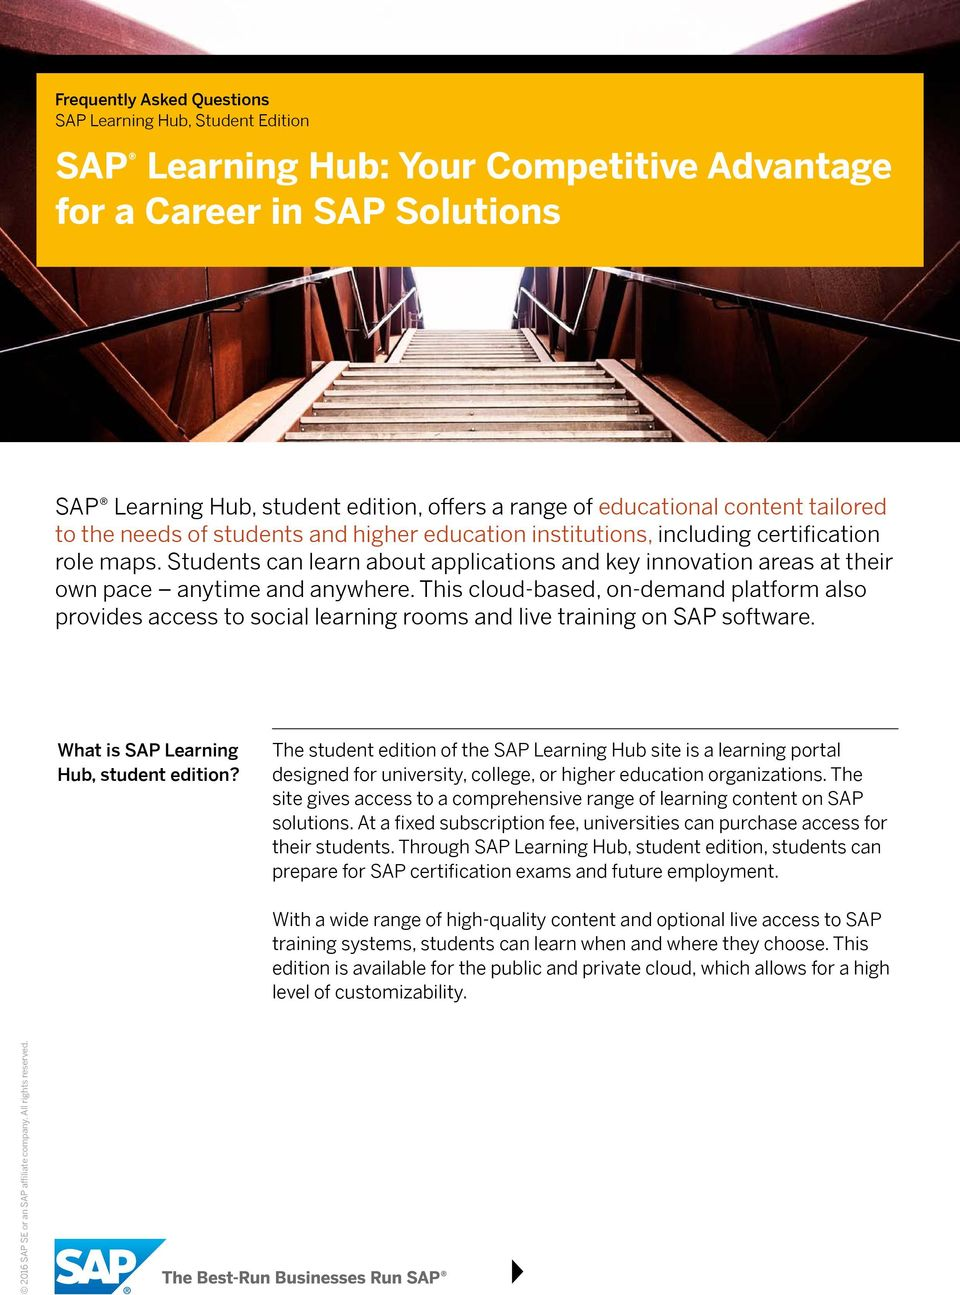 Sap Learning Hub Your Competitive Advantage For A Career In Sap